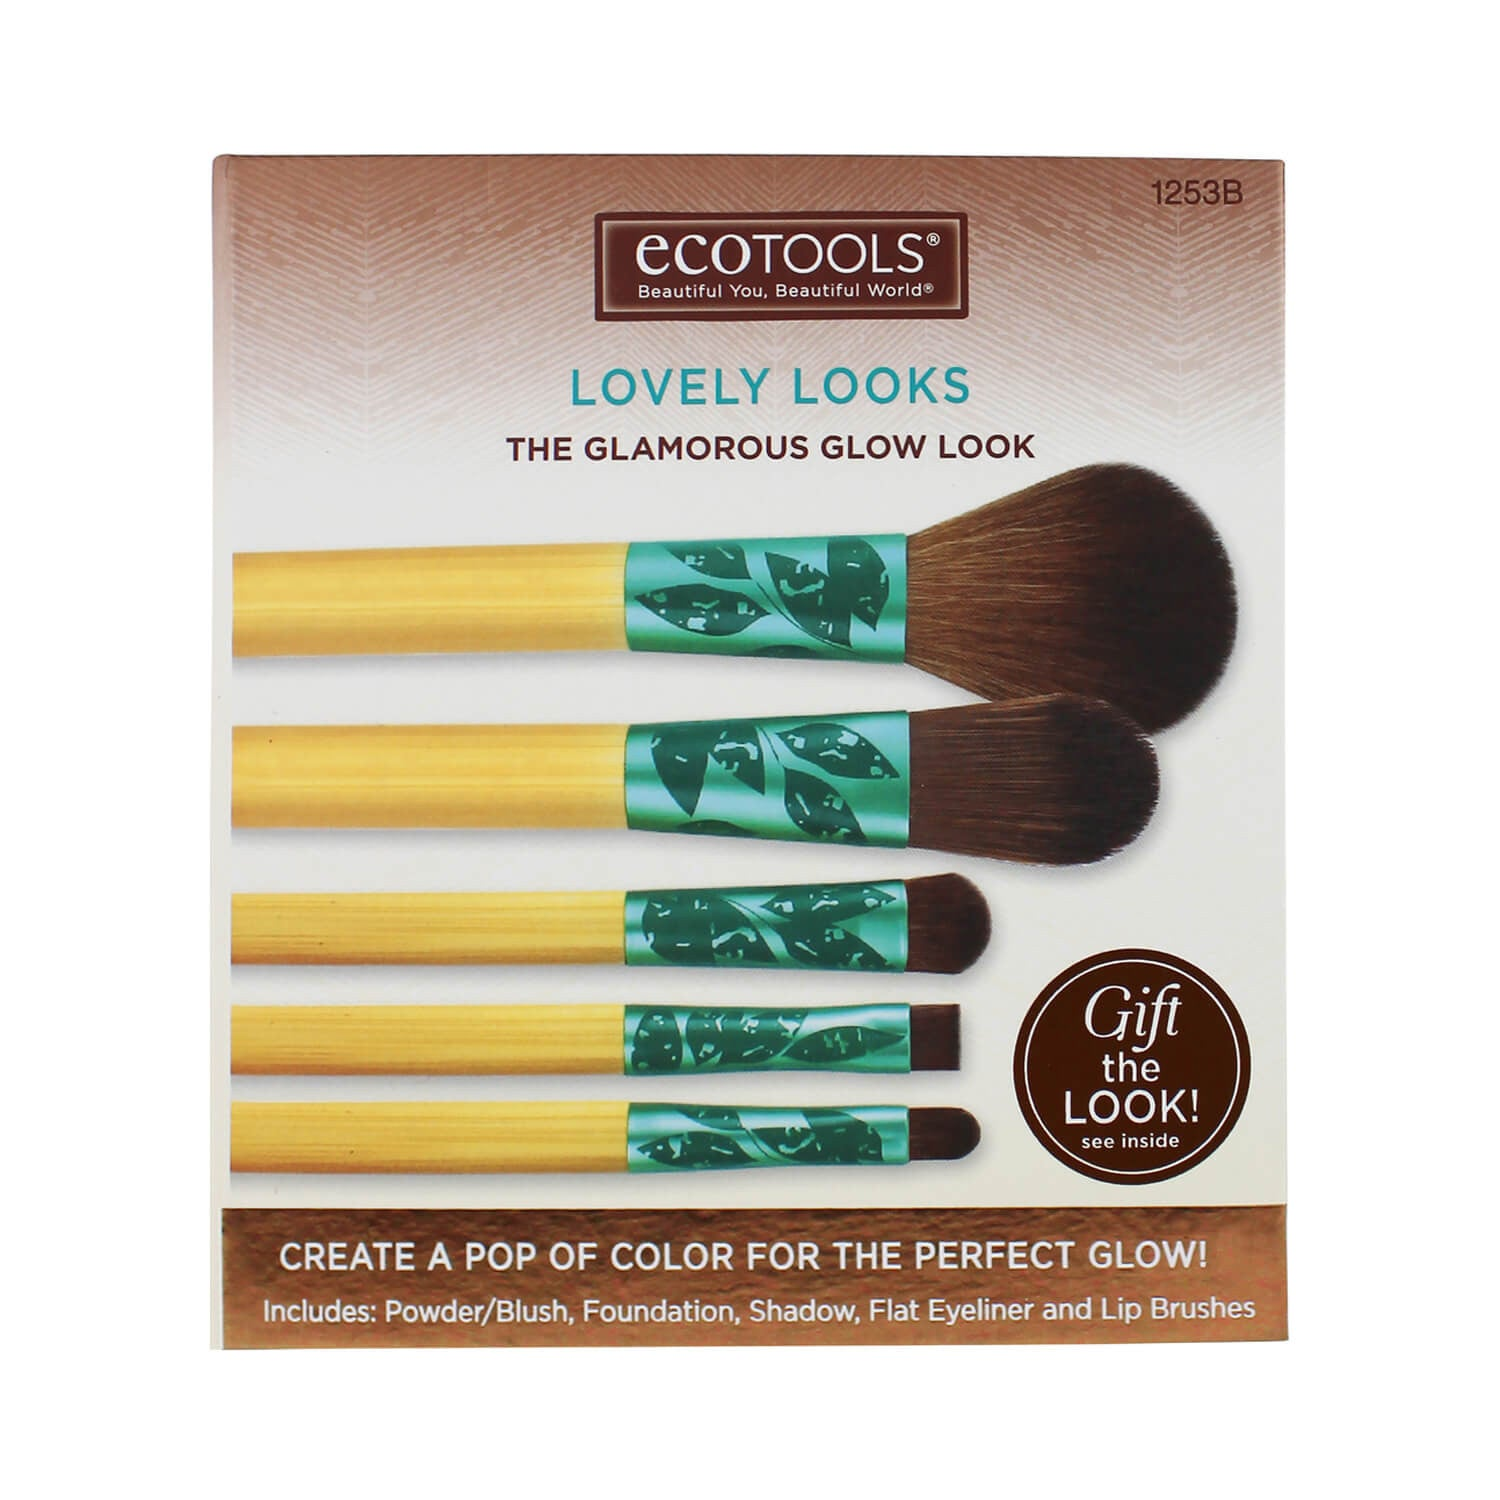 EcoTools - Lovely Looks Set - MYQT.com.au